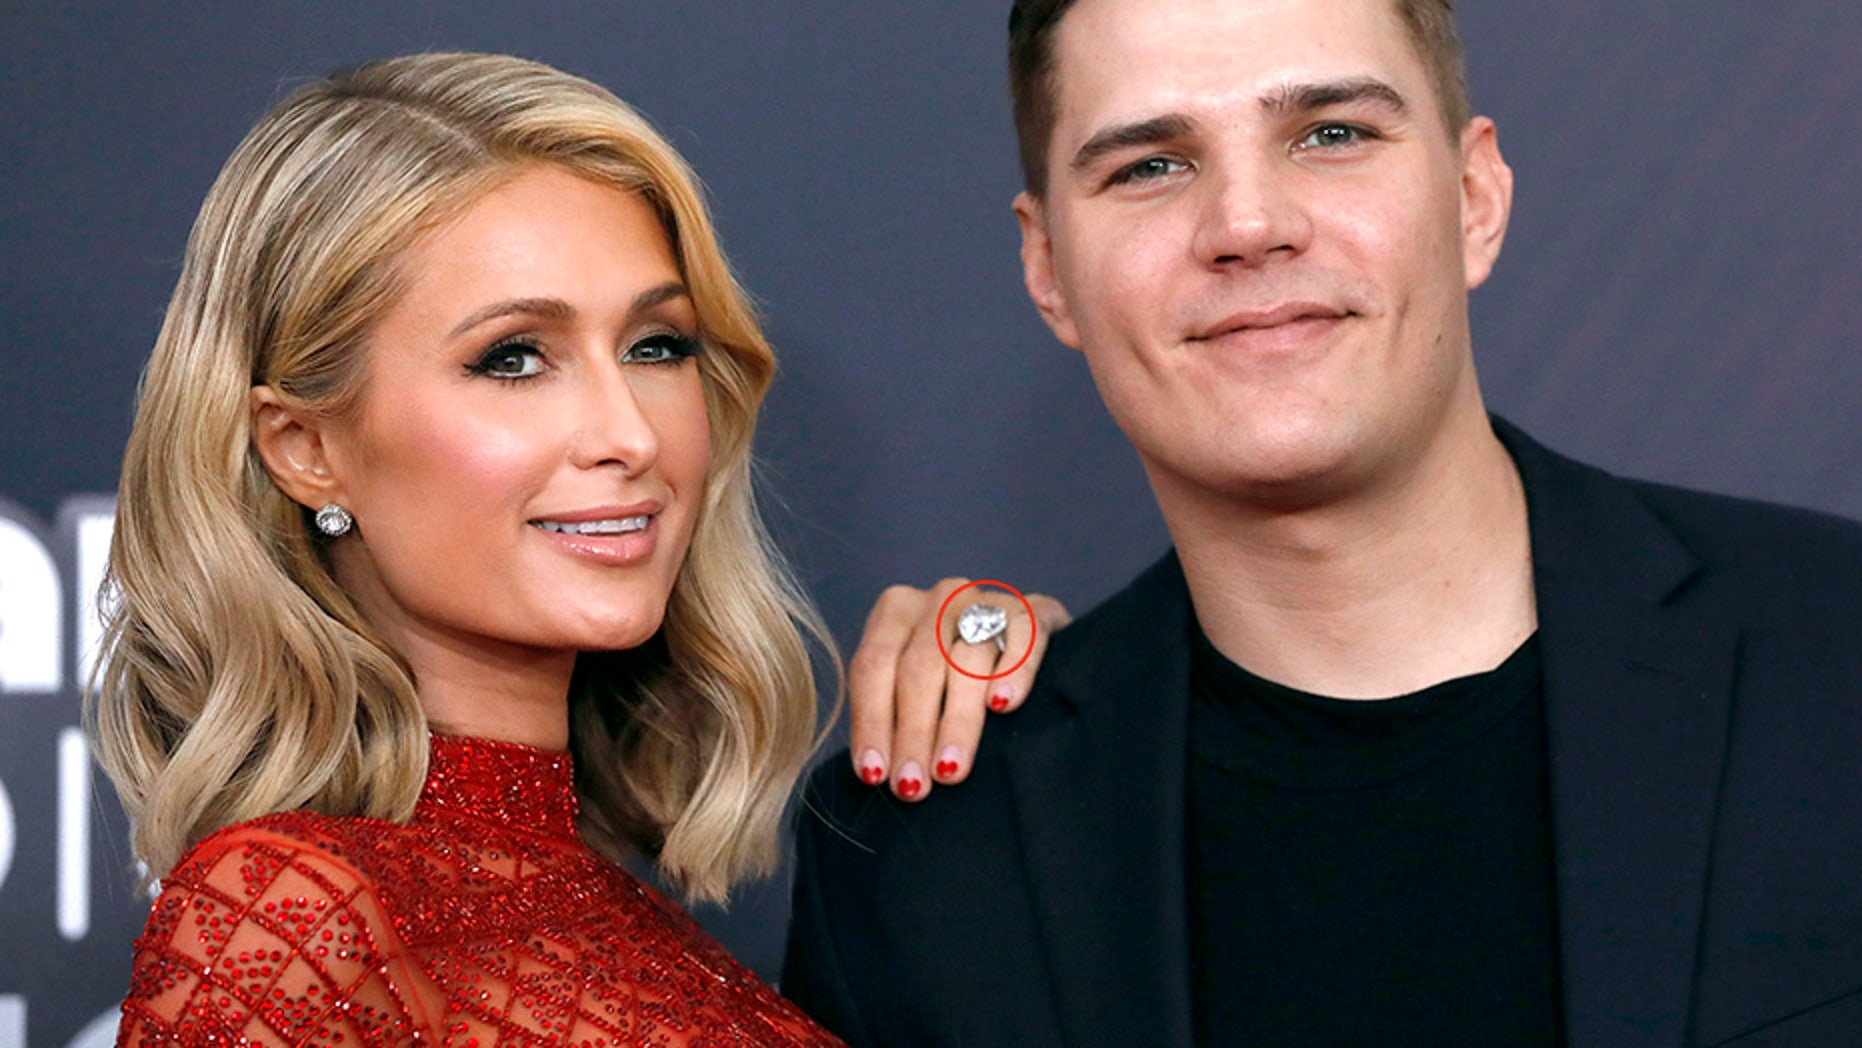 Paris Hilton expresses for the first time after canceling her engagement with her fiancé, Chris Zylka.